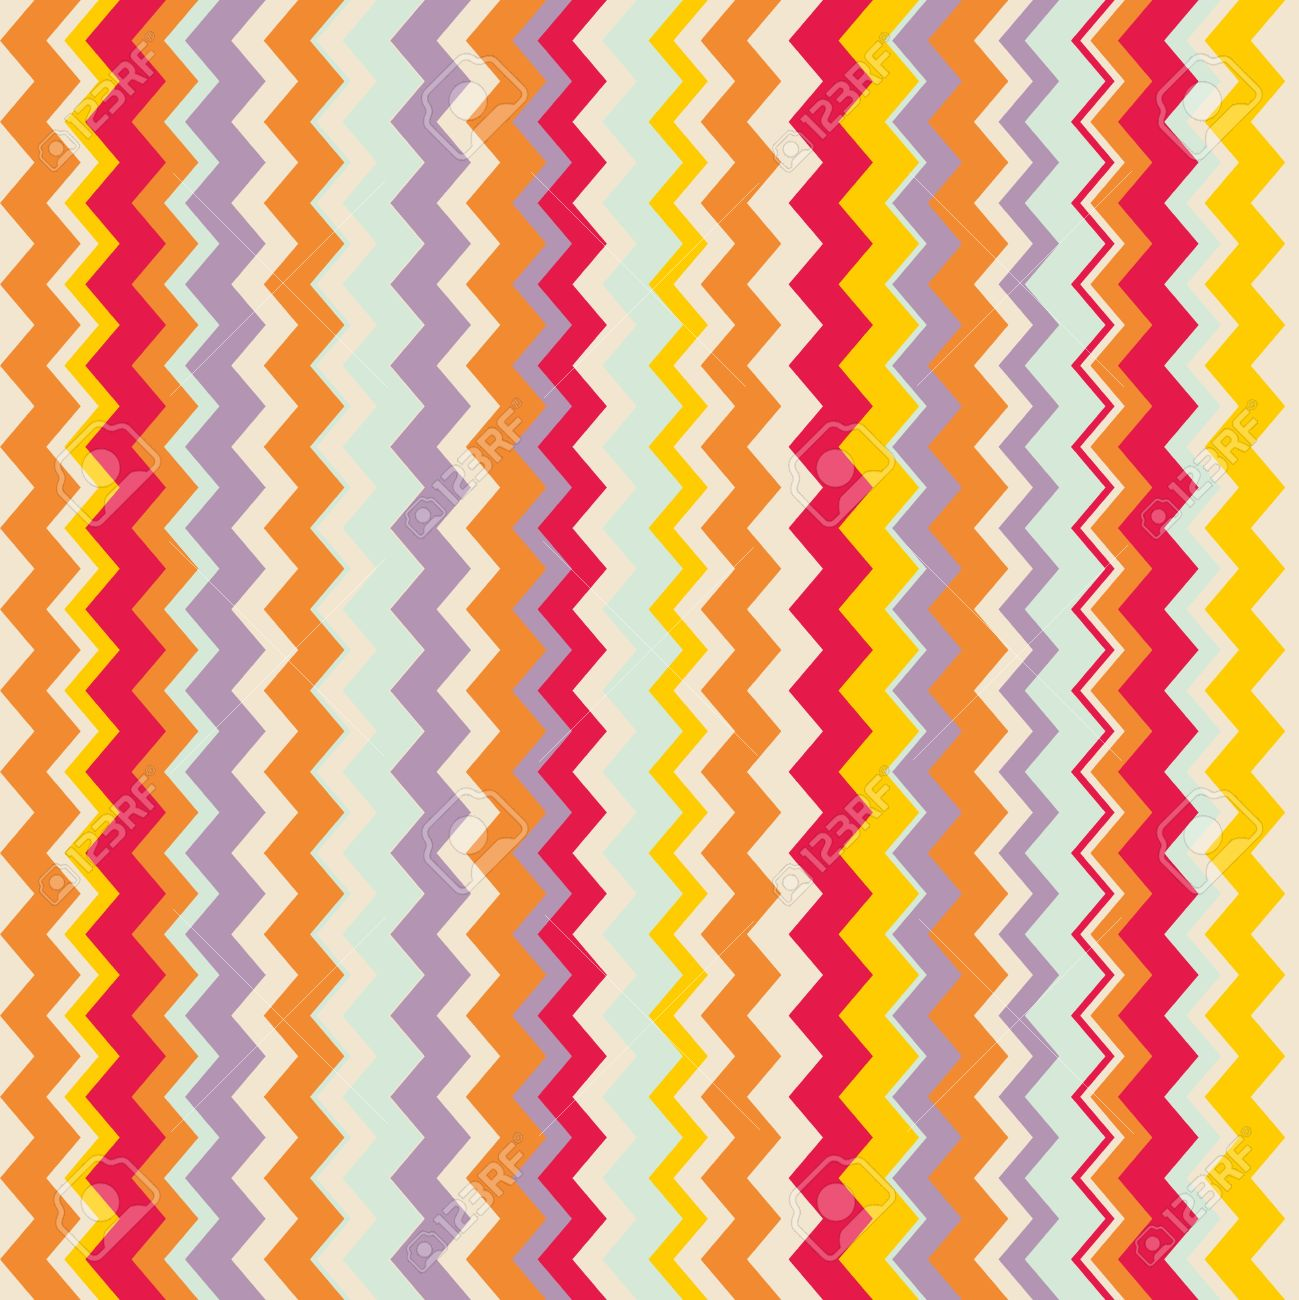 Chevron Seamless Colorful Vector Pattern Or Tile Background With Zig Zag Red Purple Yellow